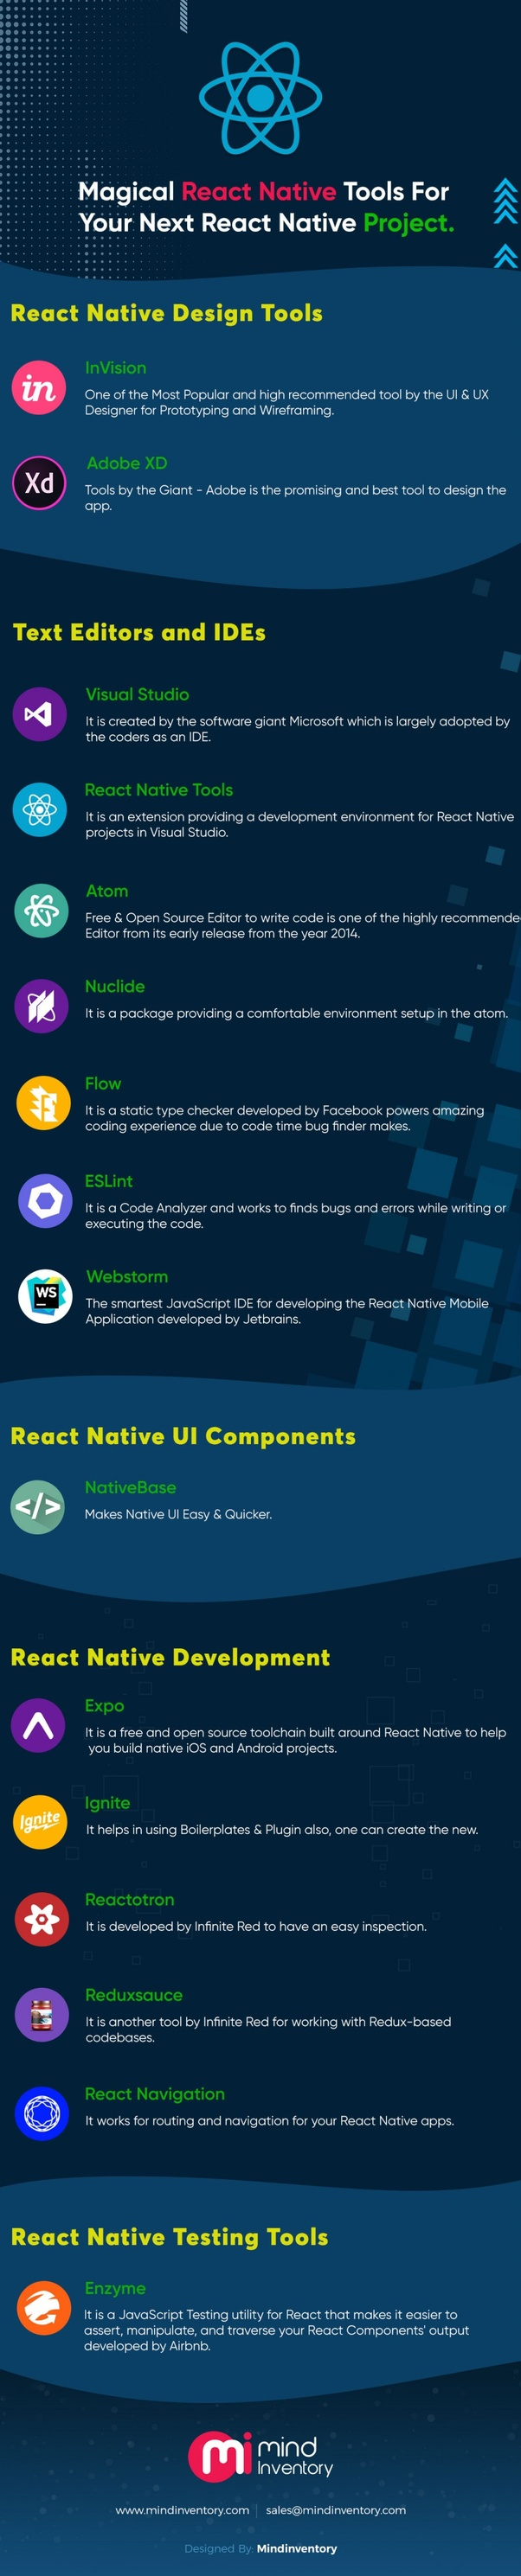 Which are the React Native development tools? - Quora